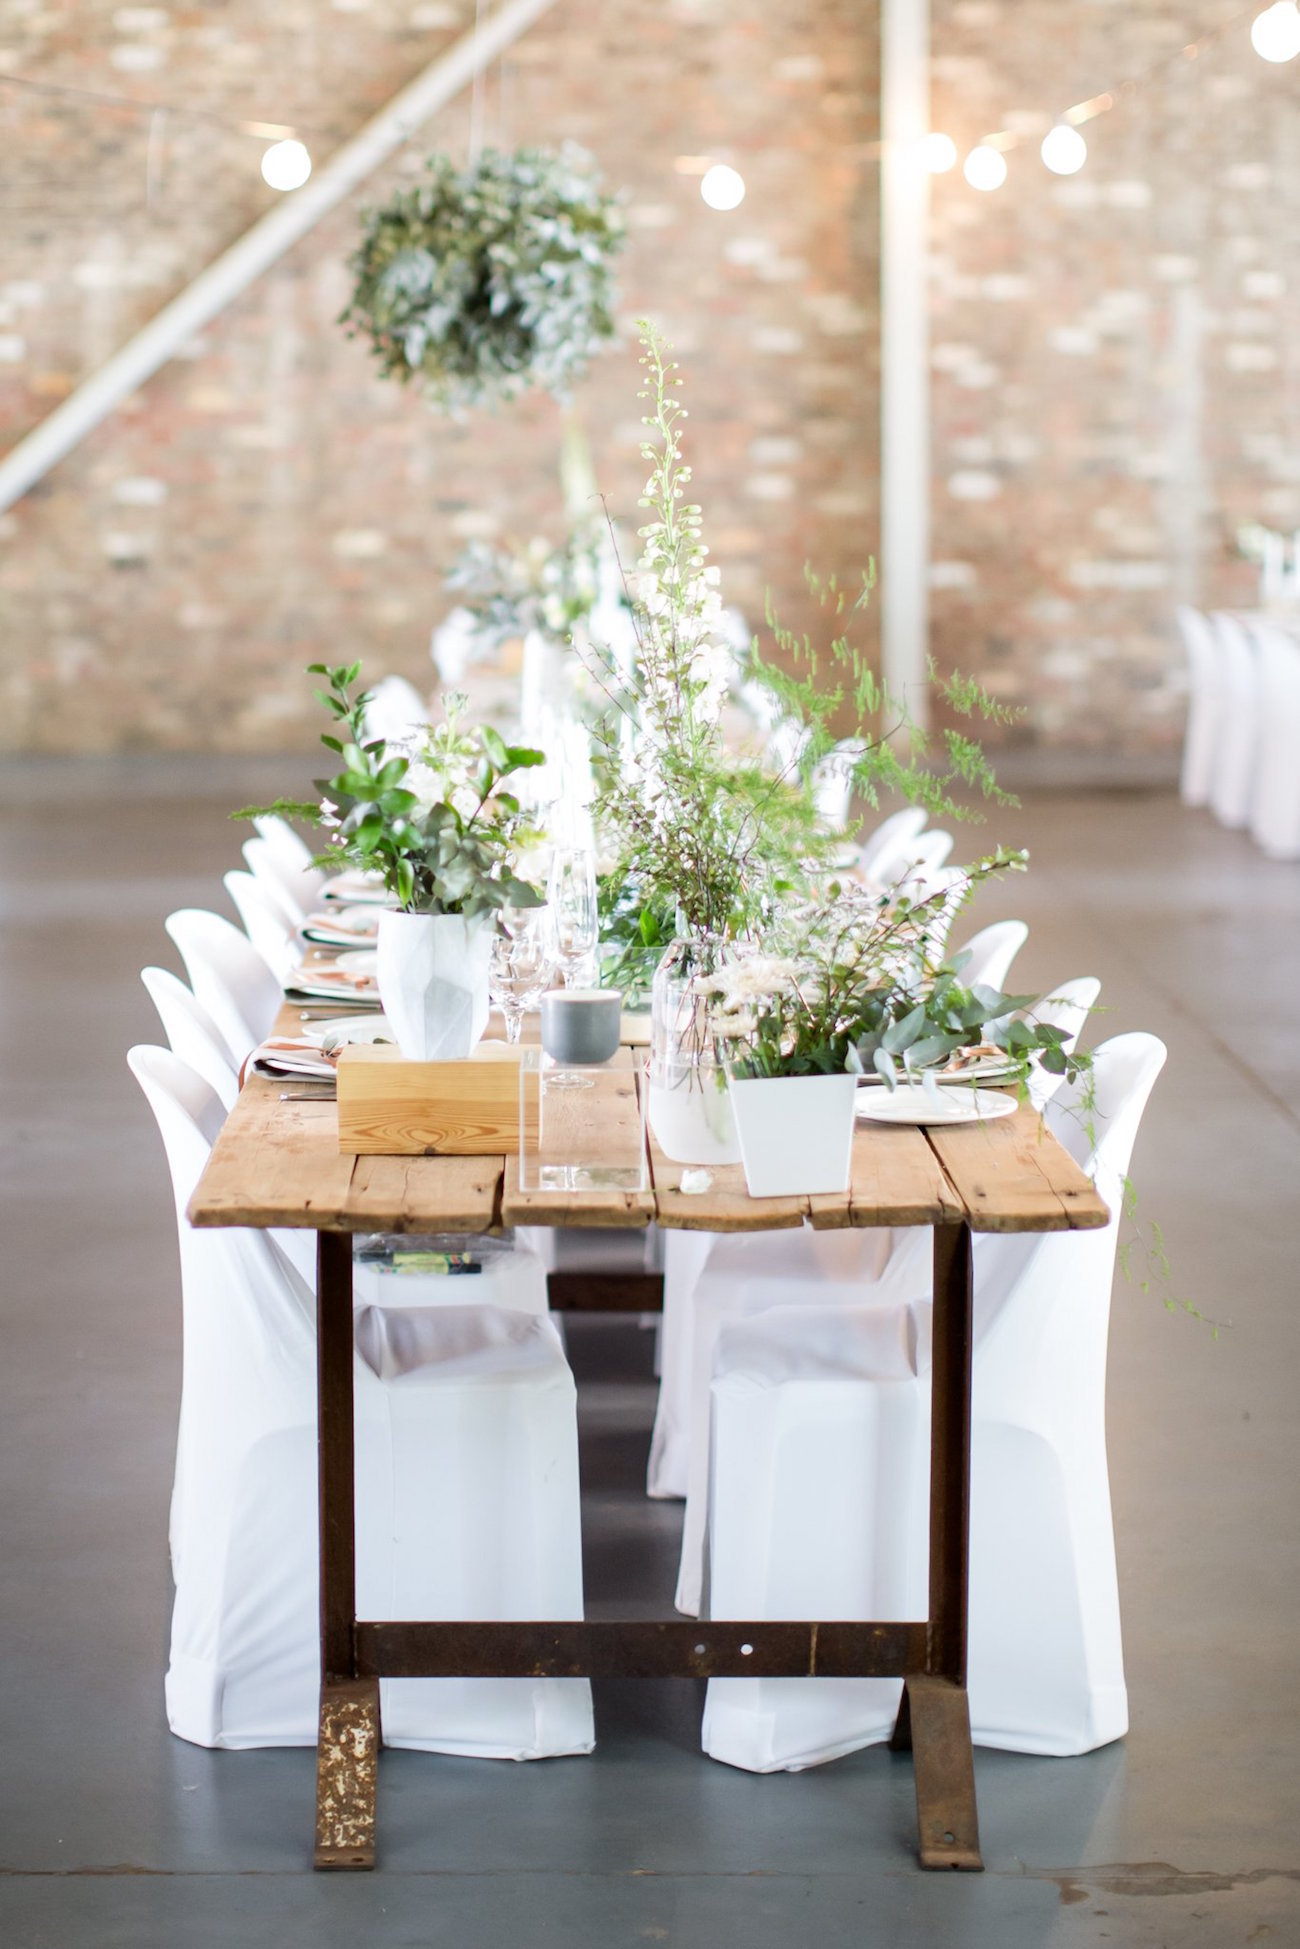 White & greenery tablescape | Image: JCclick